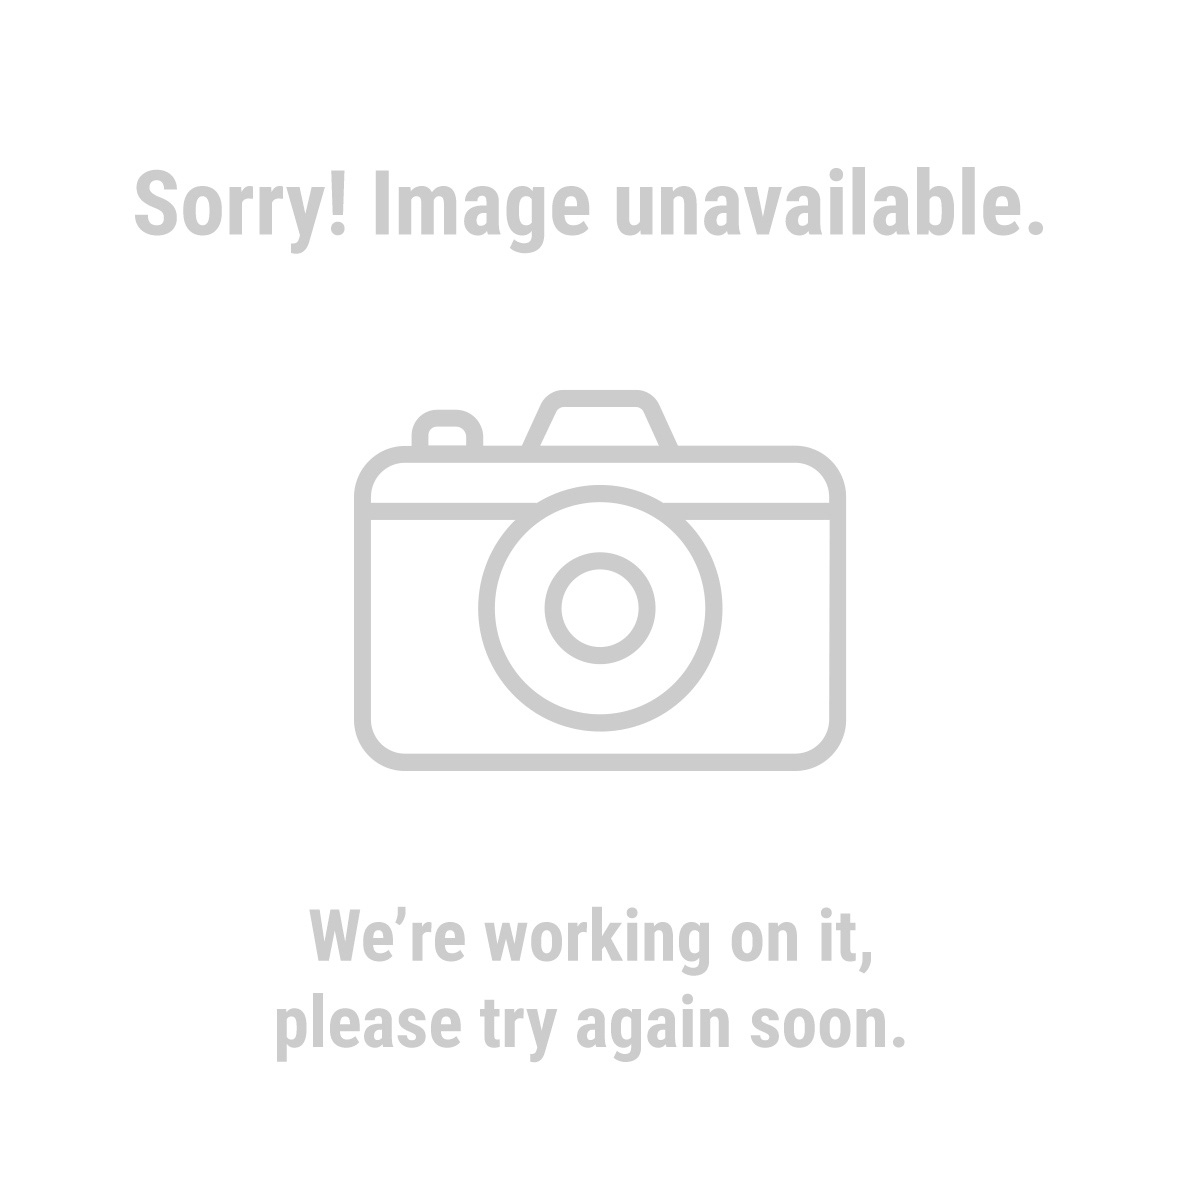 Haul-Master 62450 1/4 in. x 50 ft. Polypropylene Rope